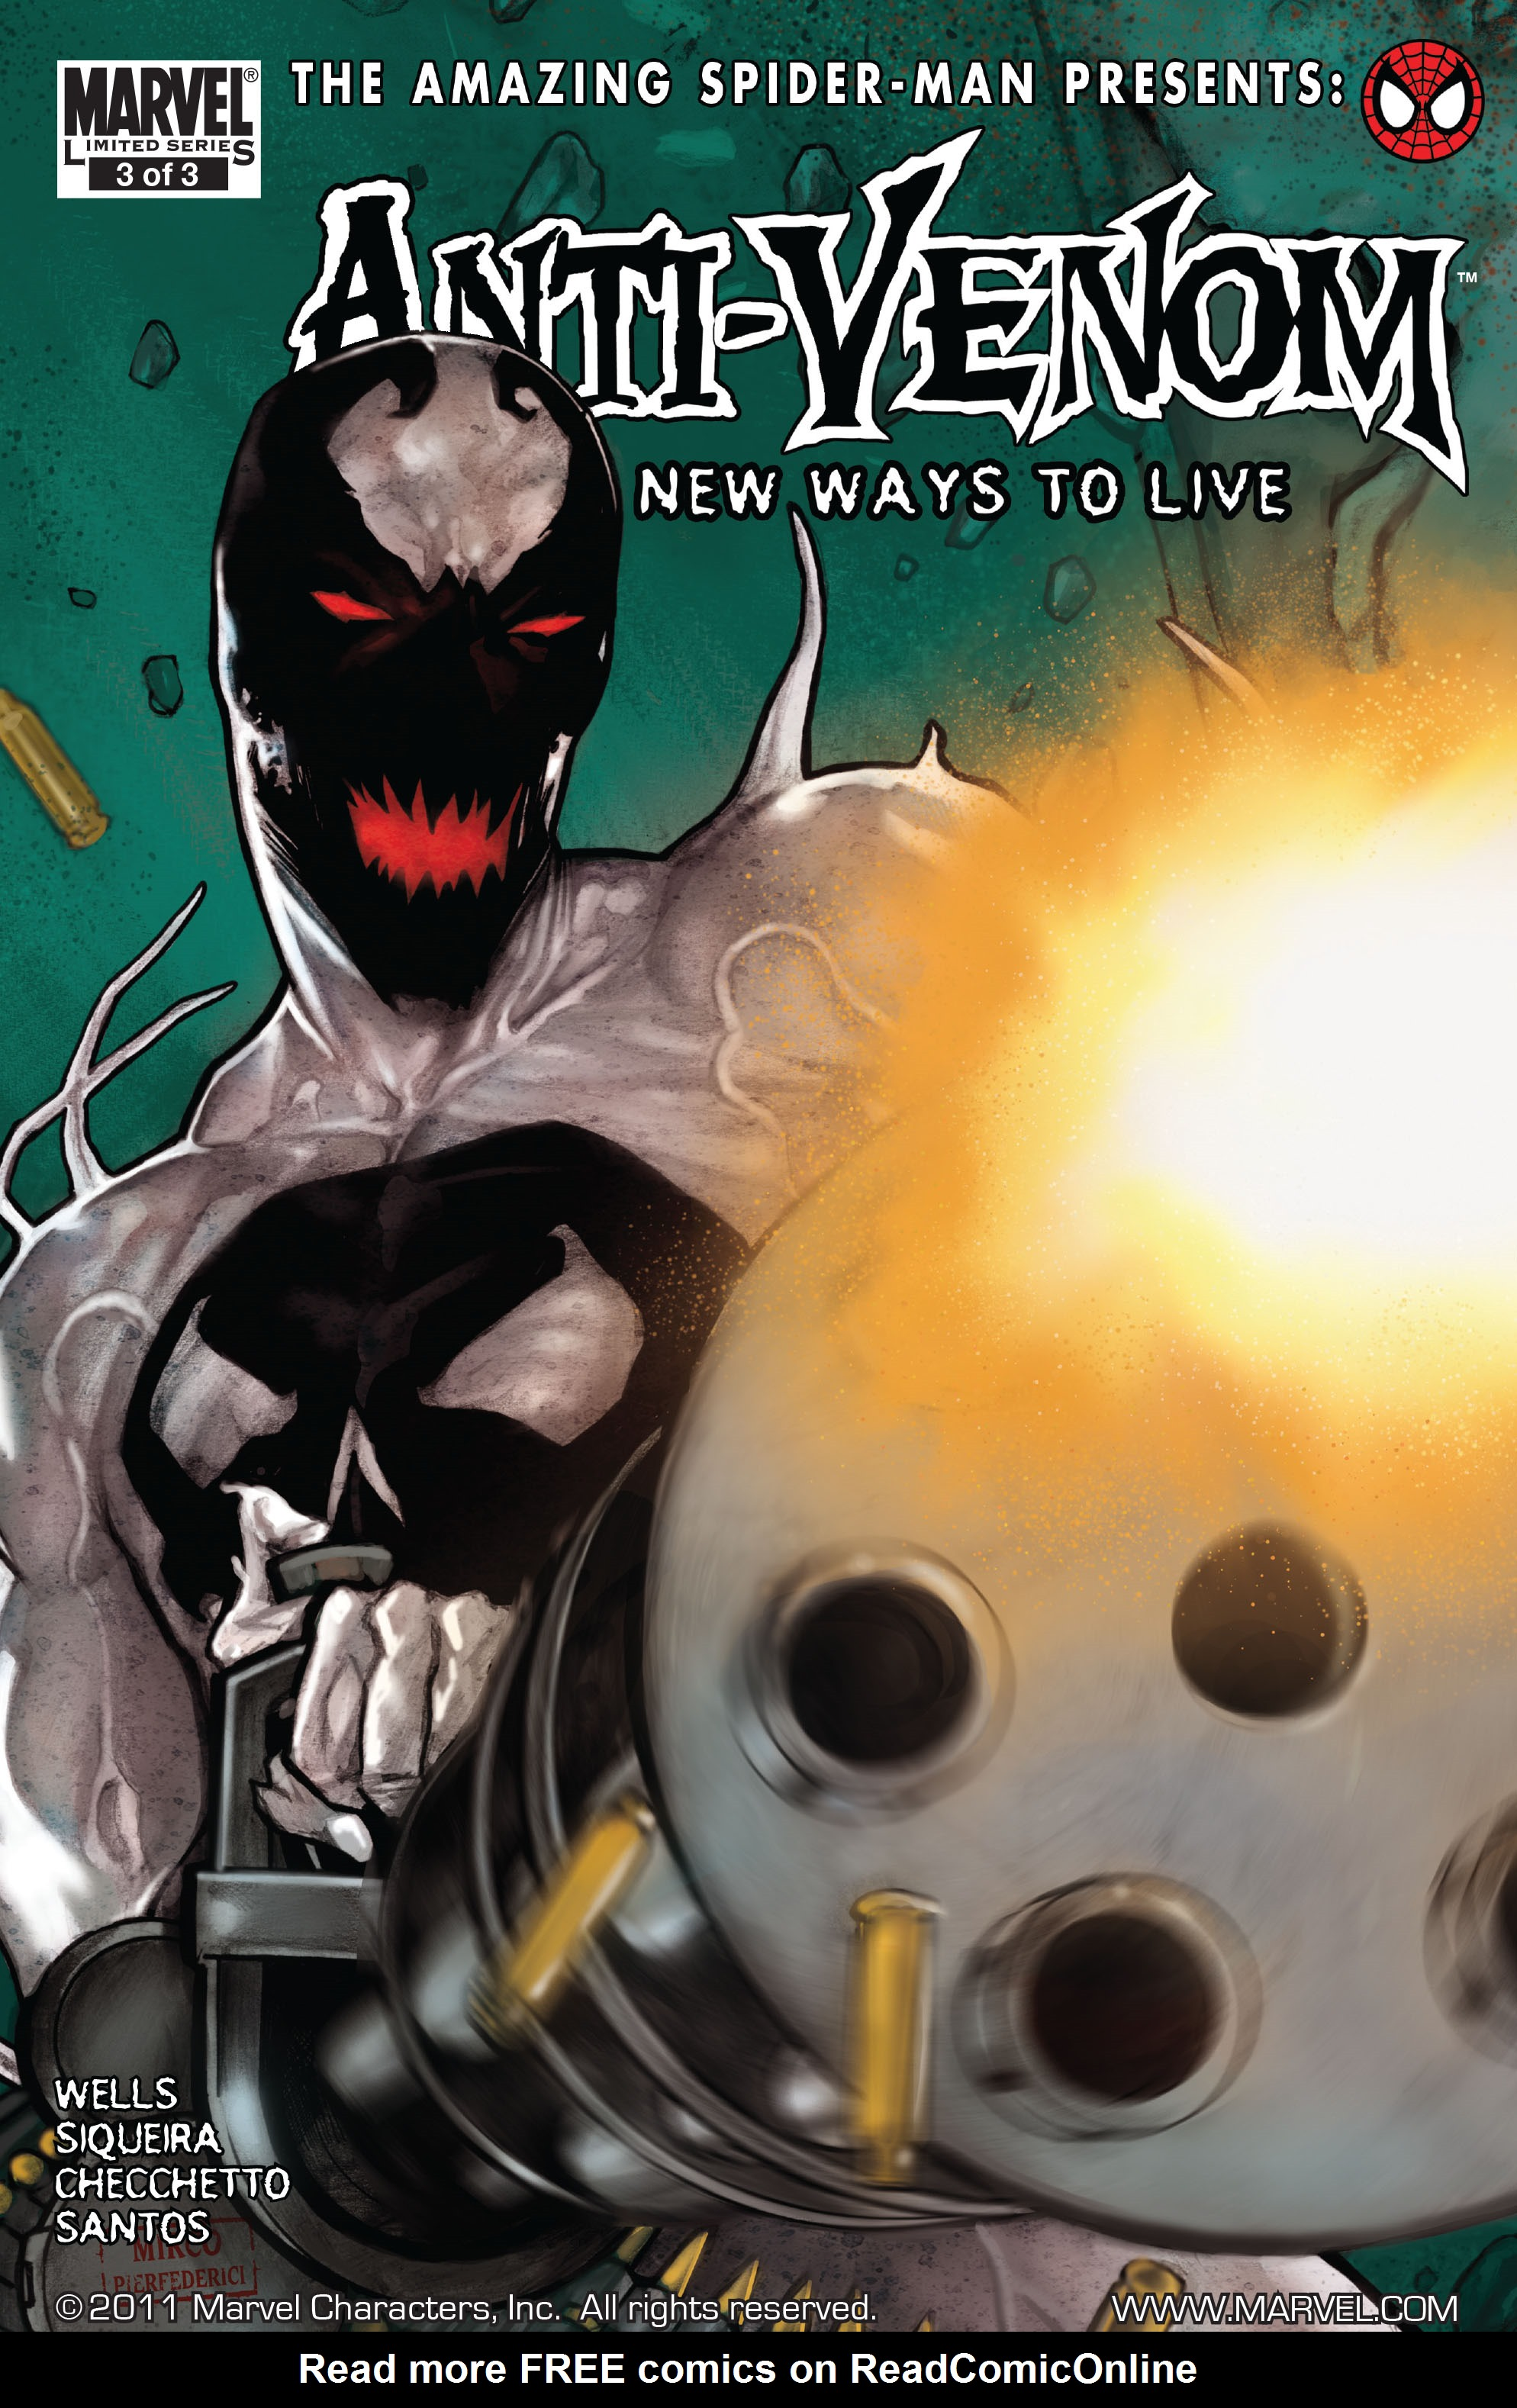 Read online Amazing Spider-Man Presents: Anti-Venom - New Ways To Live comic -  Issue # _TPB - 49